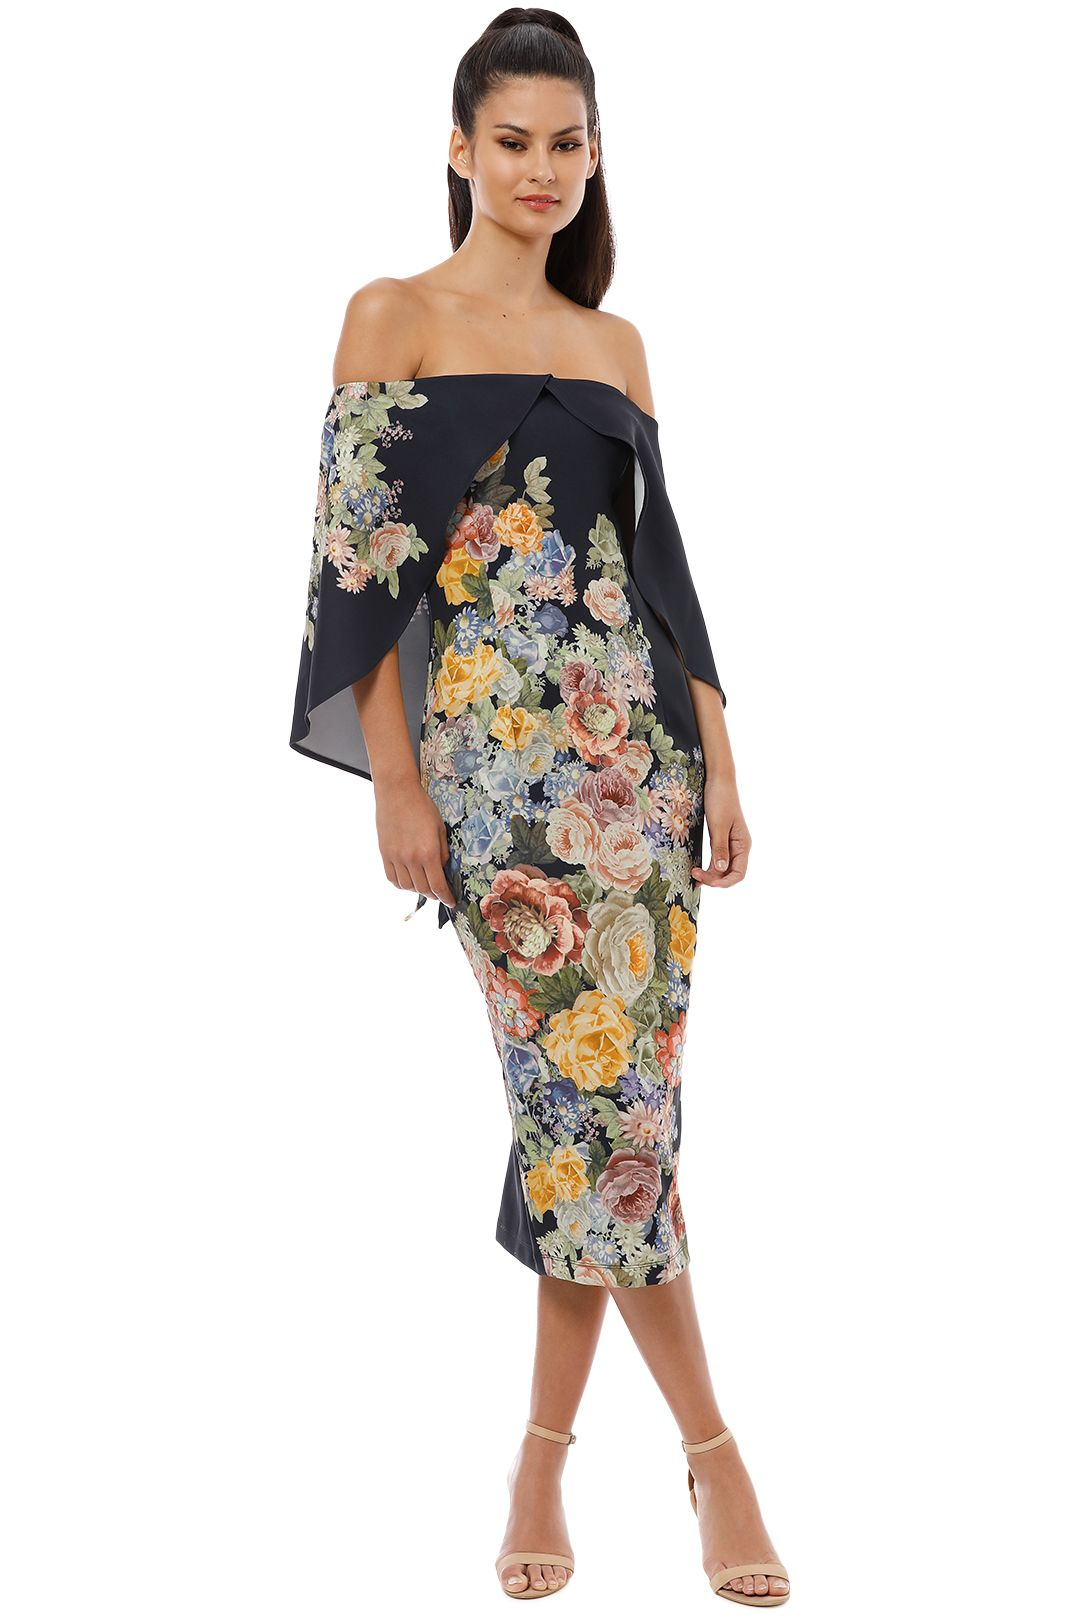 Pasduchas - Flower Garden Shoulder Midi Dress - Black - Side